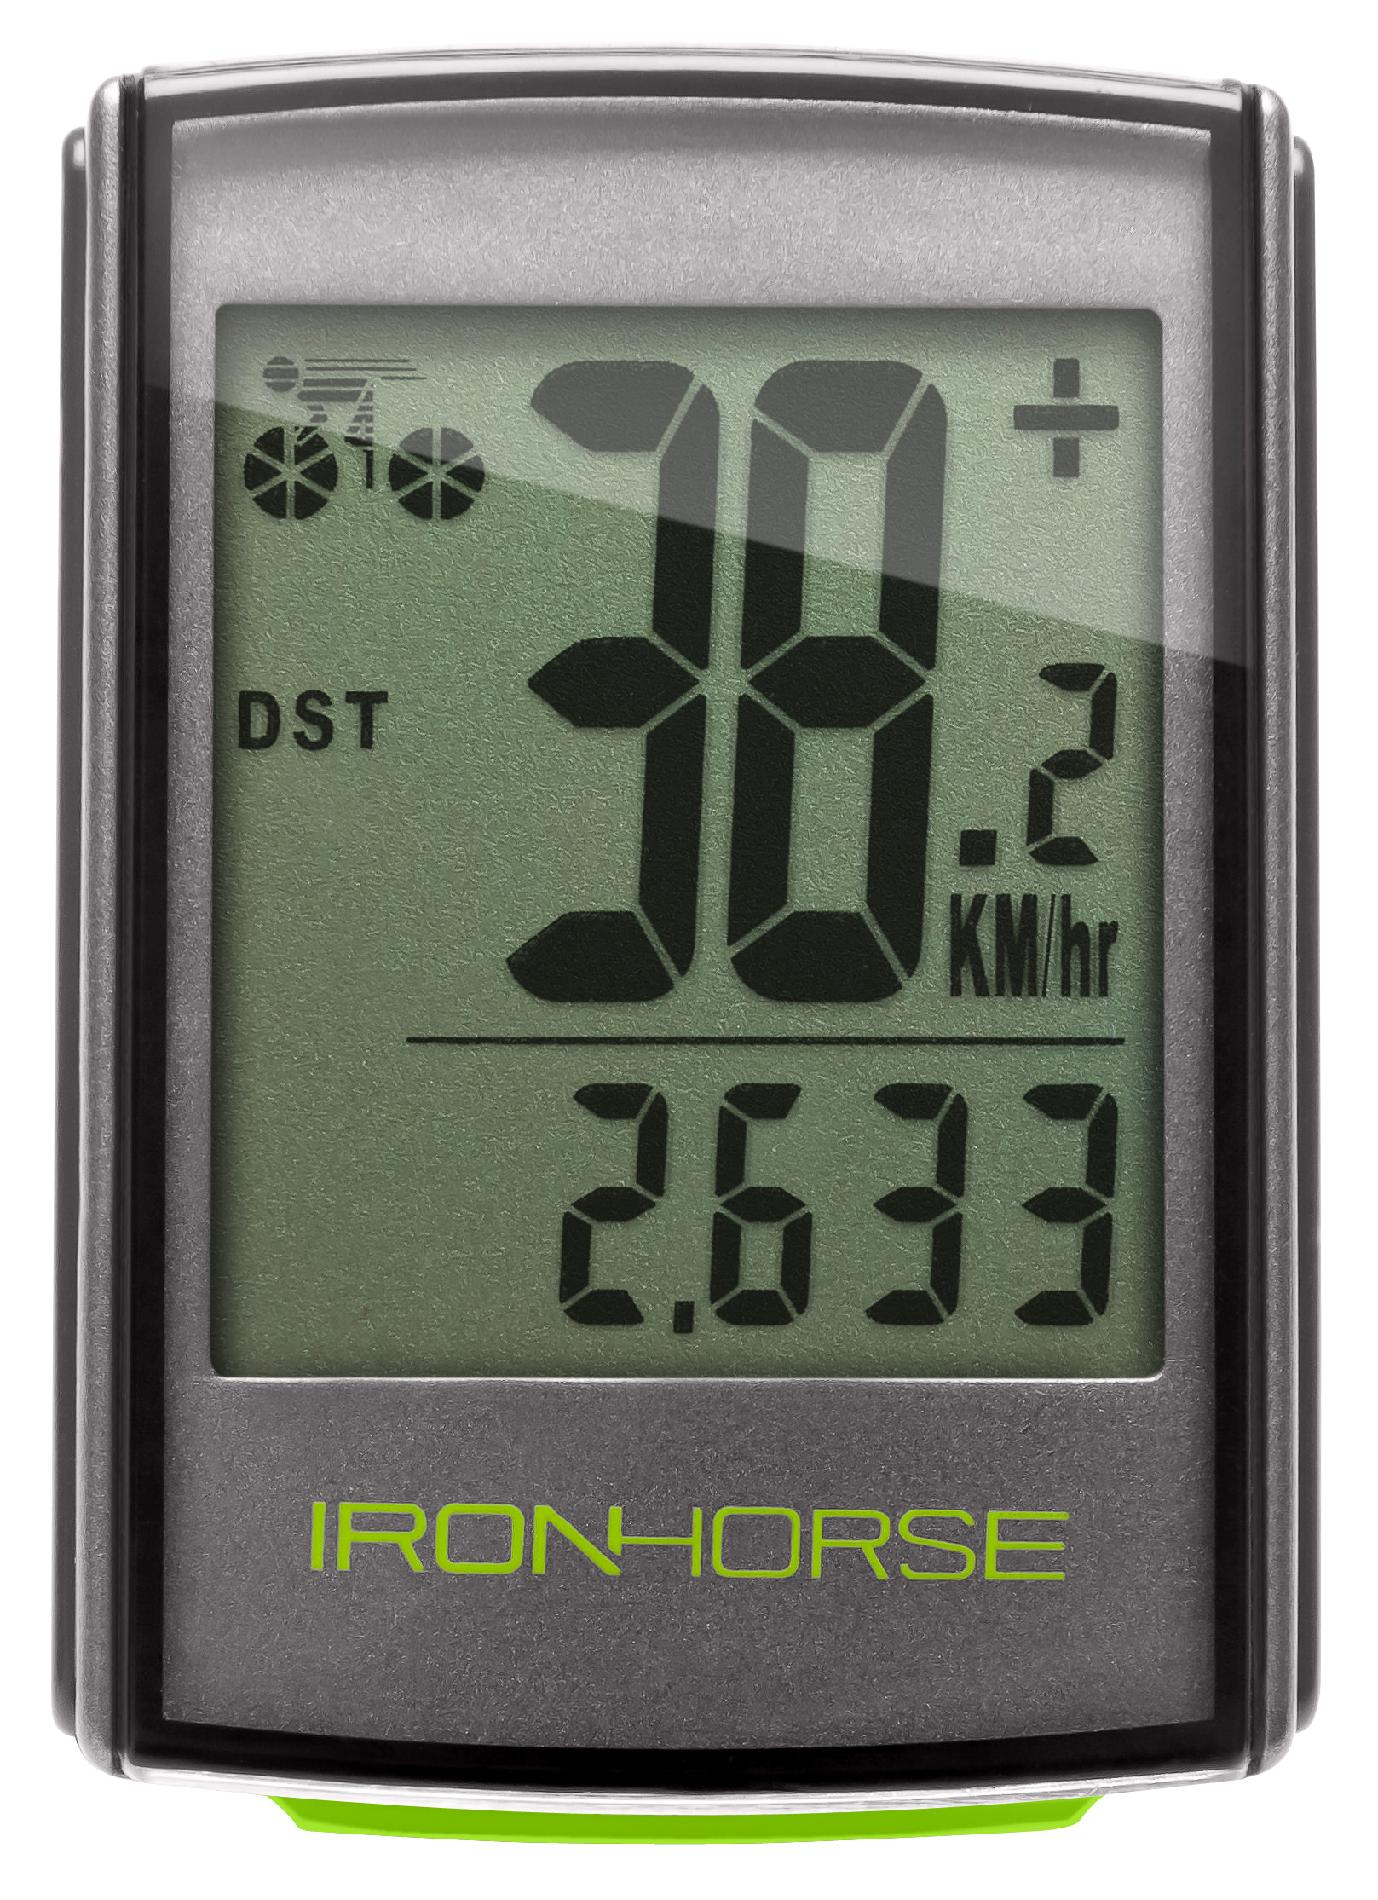 IRON HORSE 22 Function Bike Computer